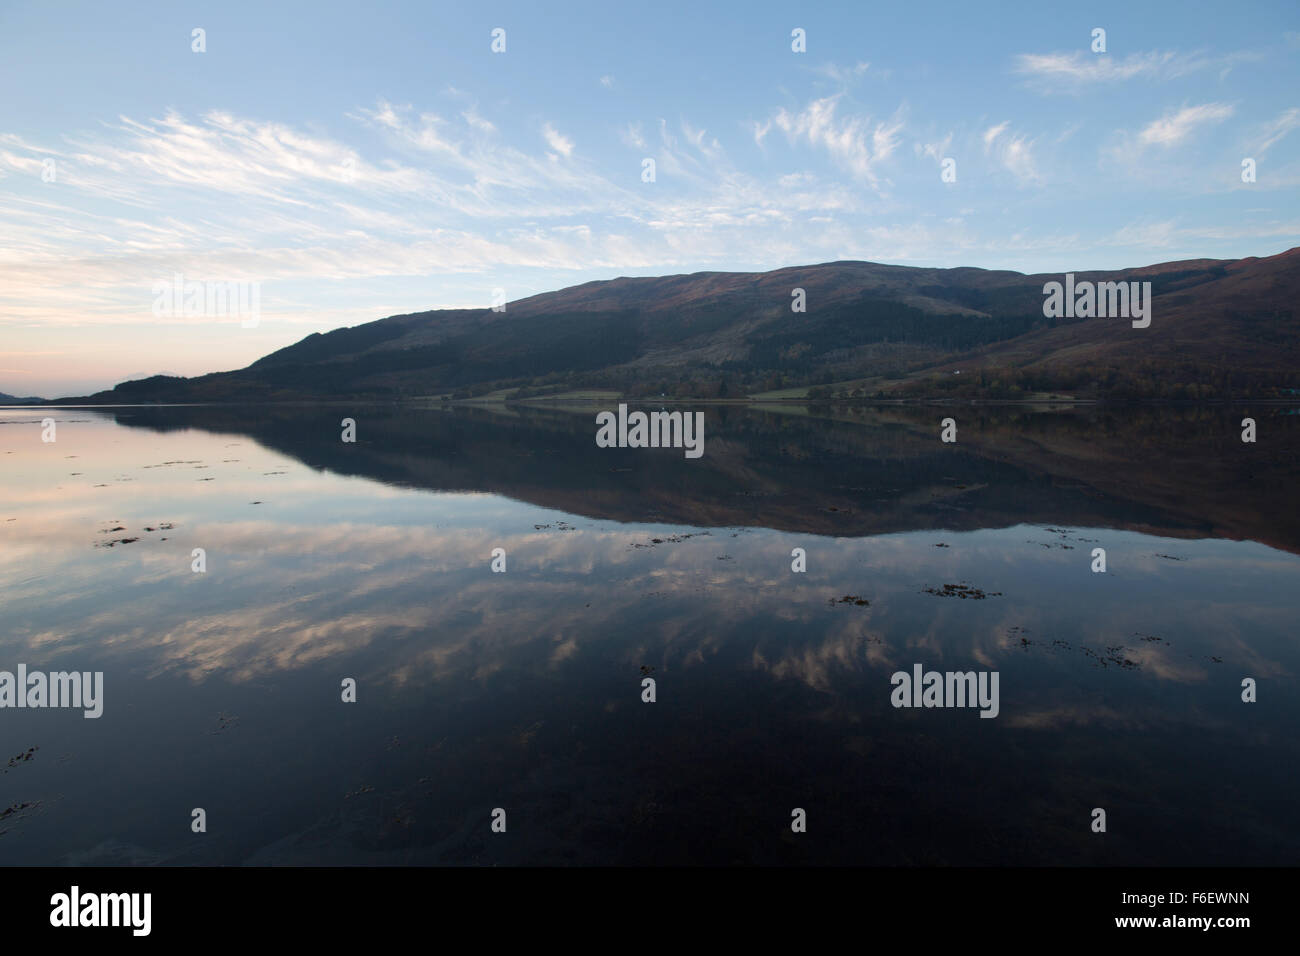 Area of Glen Coe, Scotland. Picturesque dusk view of Loch Leven with North Ballachulish in the background. - Stock Image